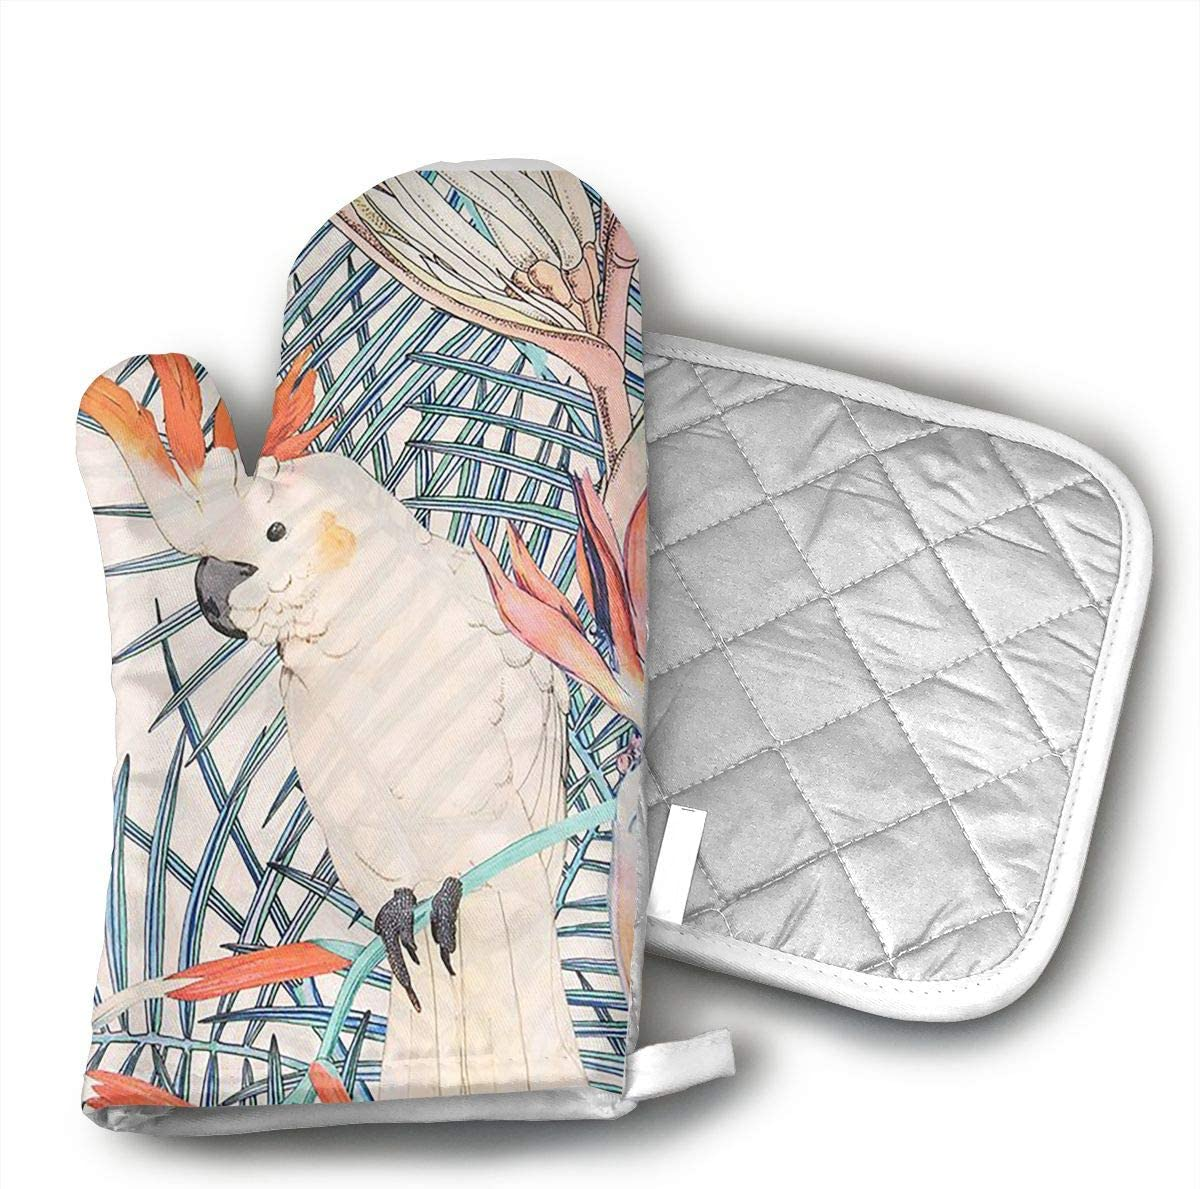 TRENDCAT Colorful Parrot Oven Mitts and Potholders (2-Piece Sets) - Extra Long Professional Heat Resistant Pot Holder & Baking Gloves - Food Safe